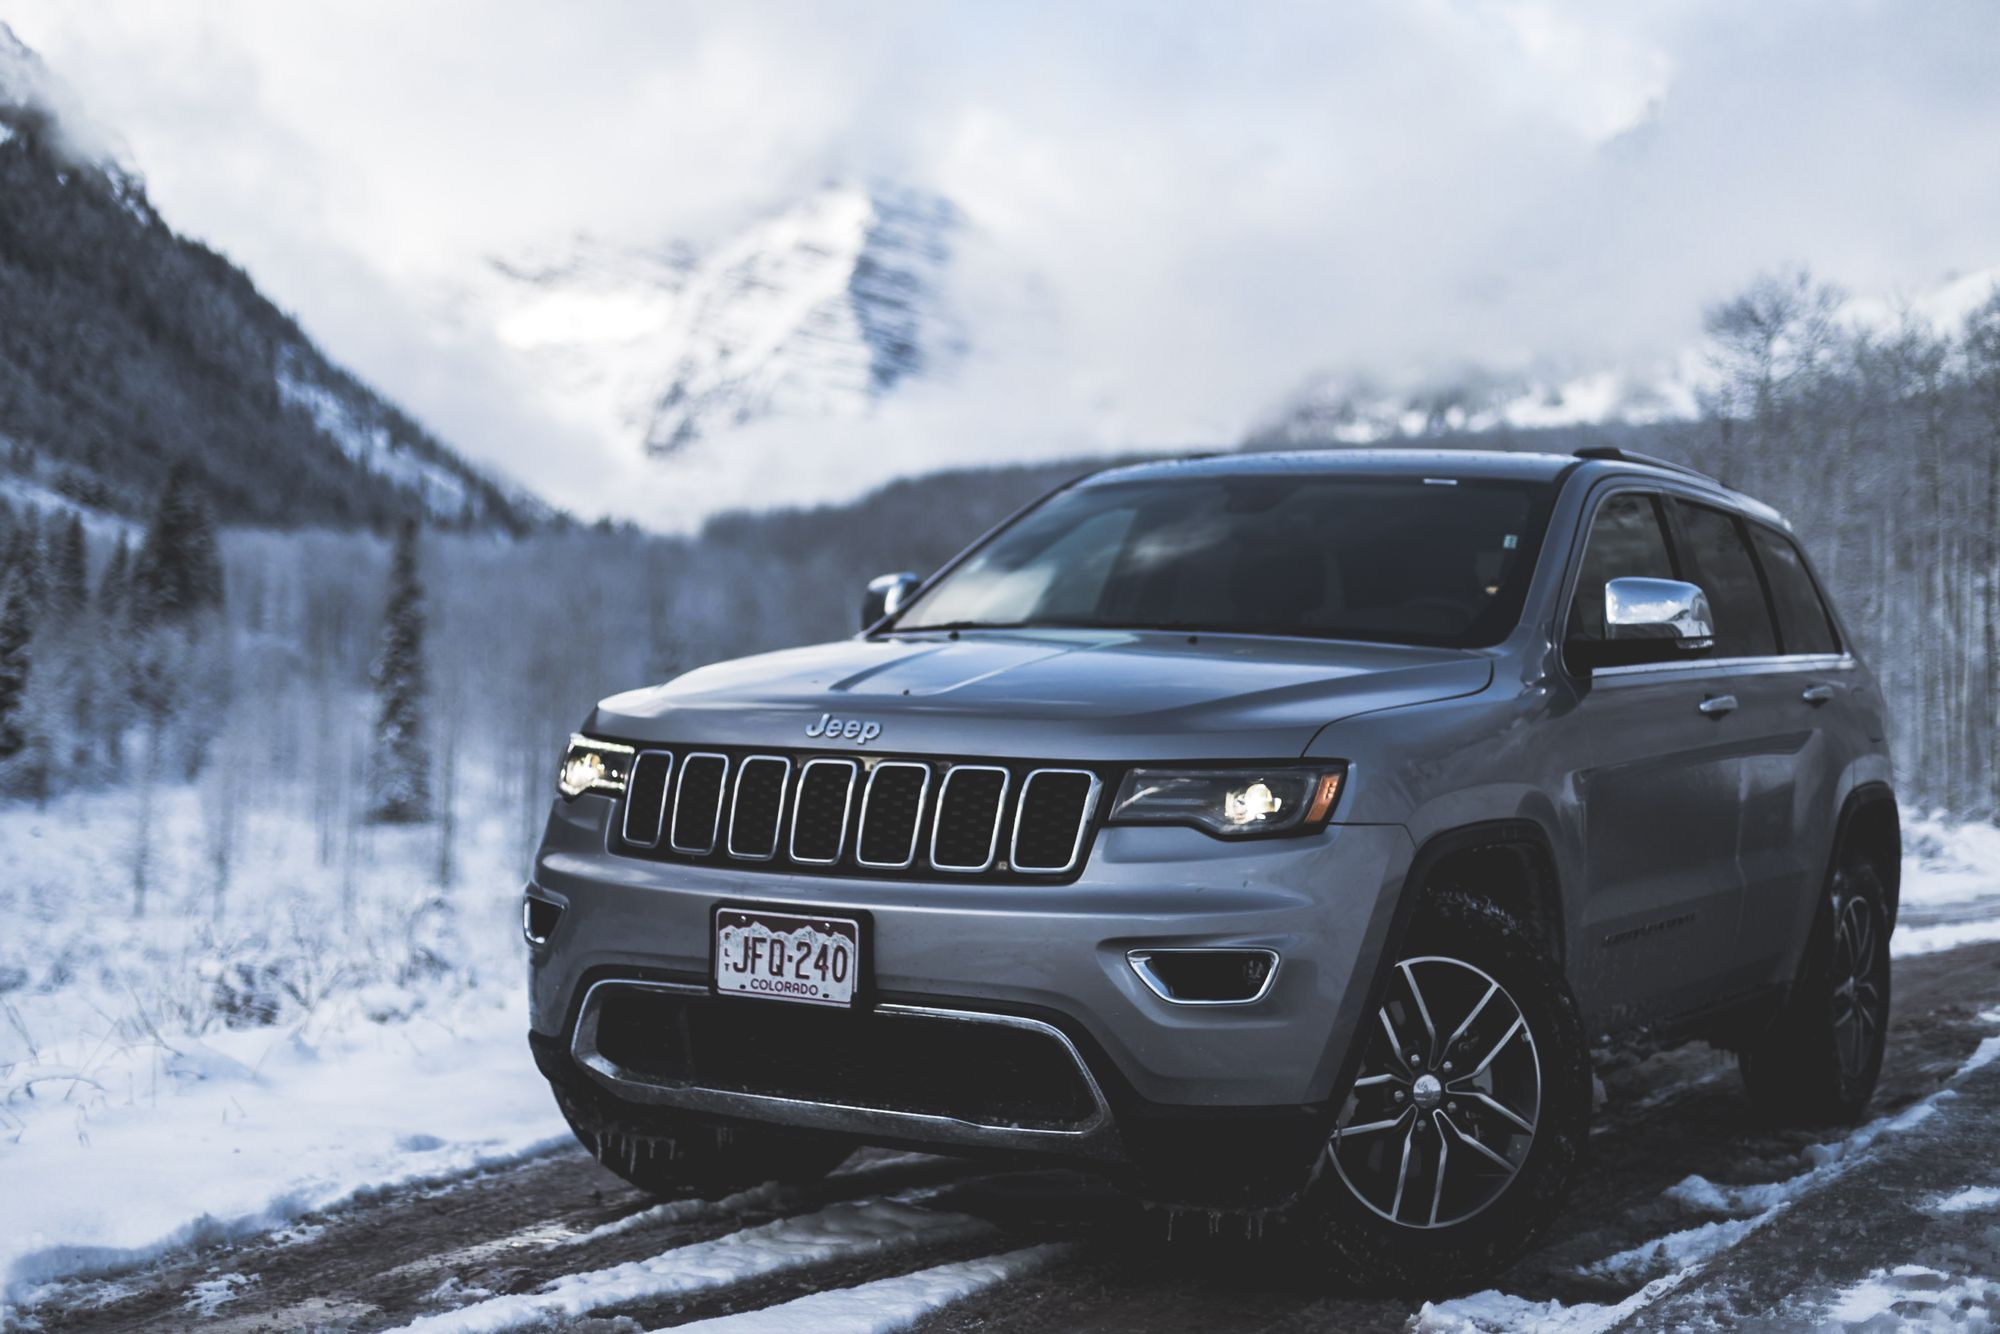 Protecting Your New or Used Jeep With a Jeep Extended Warranty